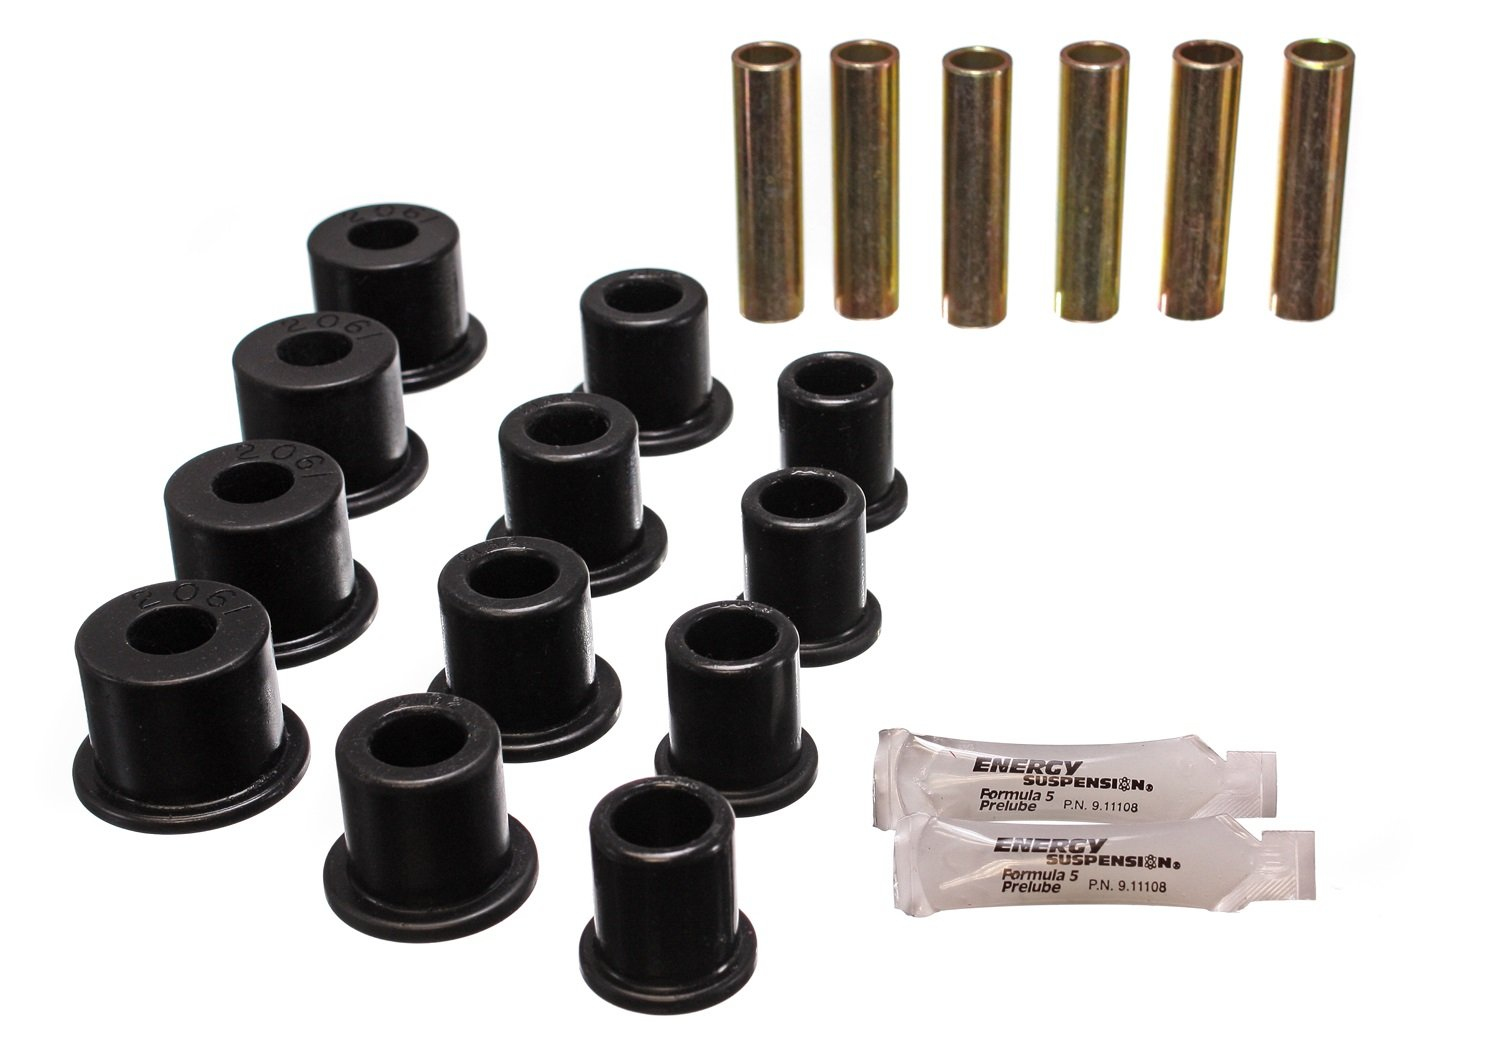 Energy Suspension 4.2134G REAR SPRING BUSHINGS by Energy Suspension